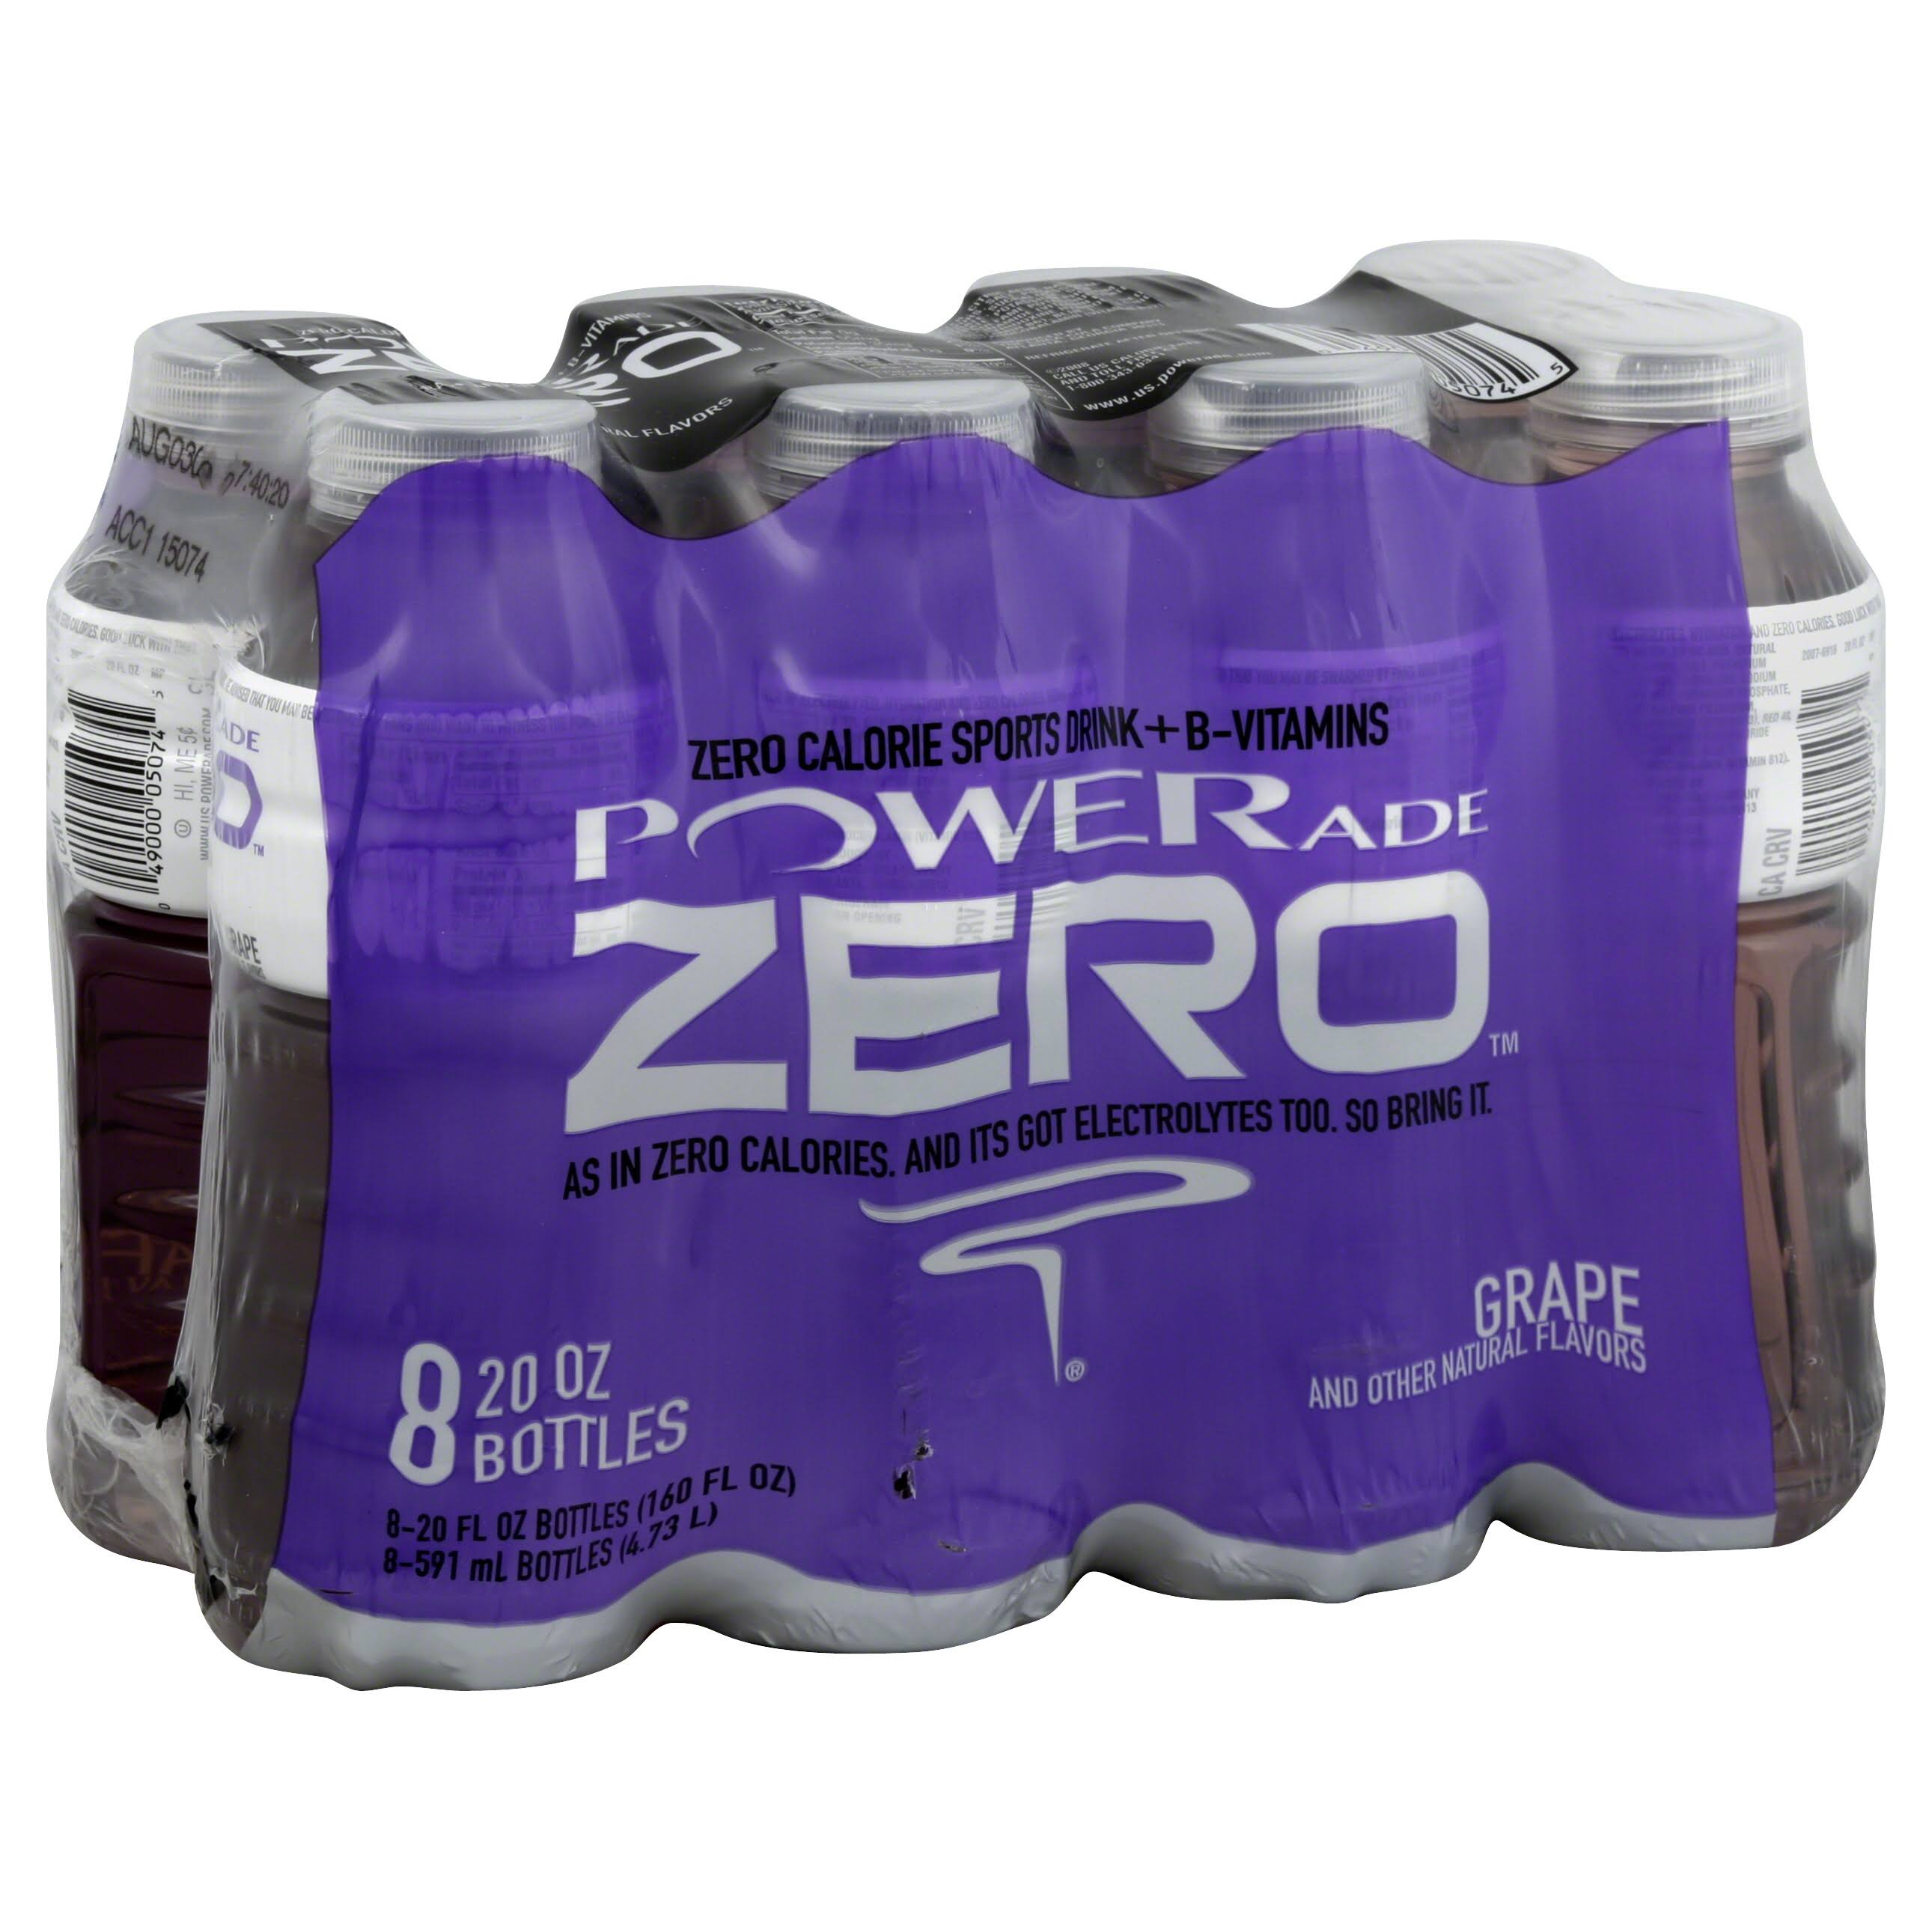 Powerade Zero Ion4 Sports Drinks - Grape, 20 oz, 8 pk